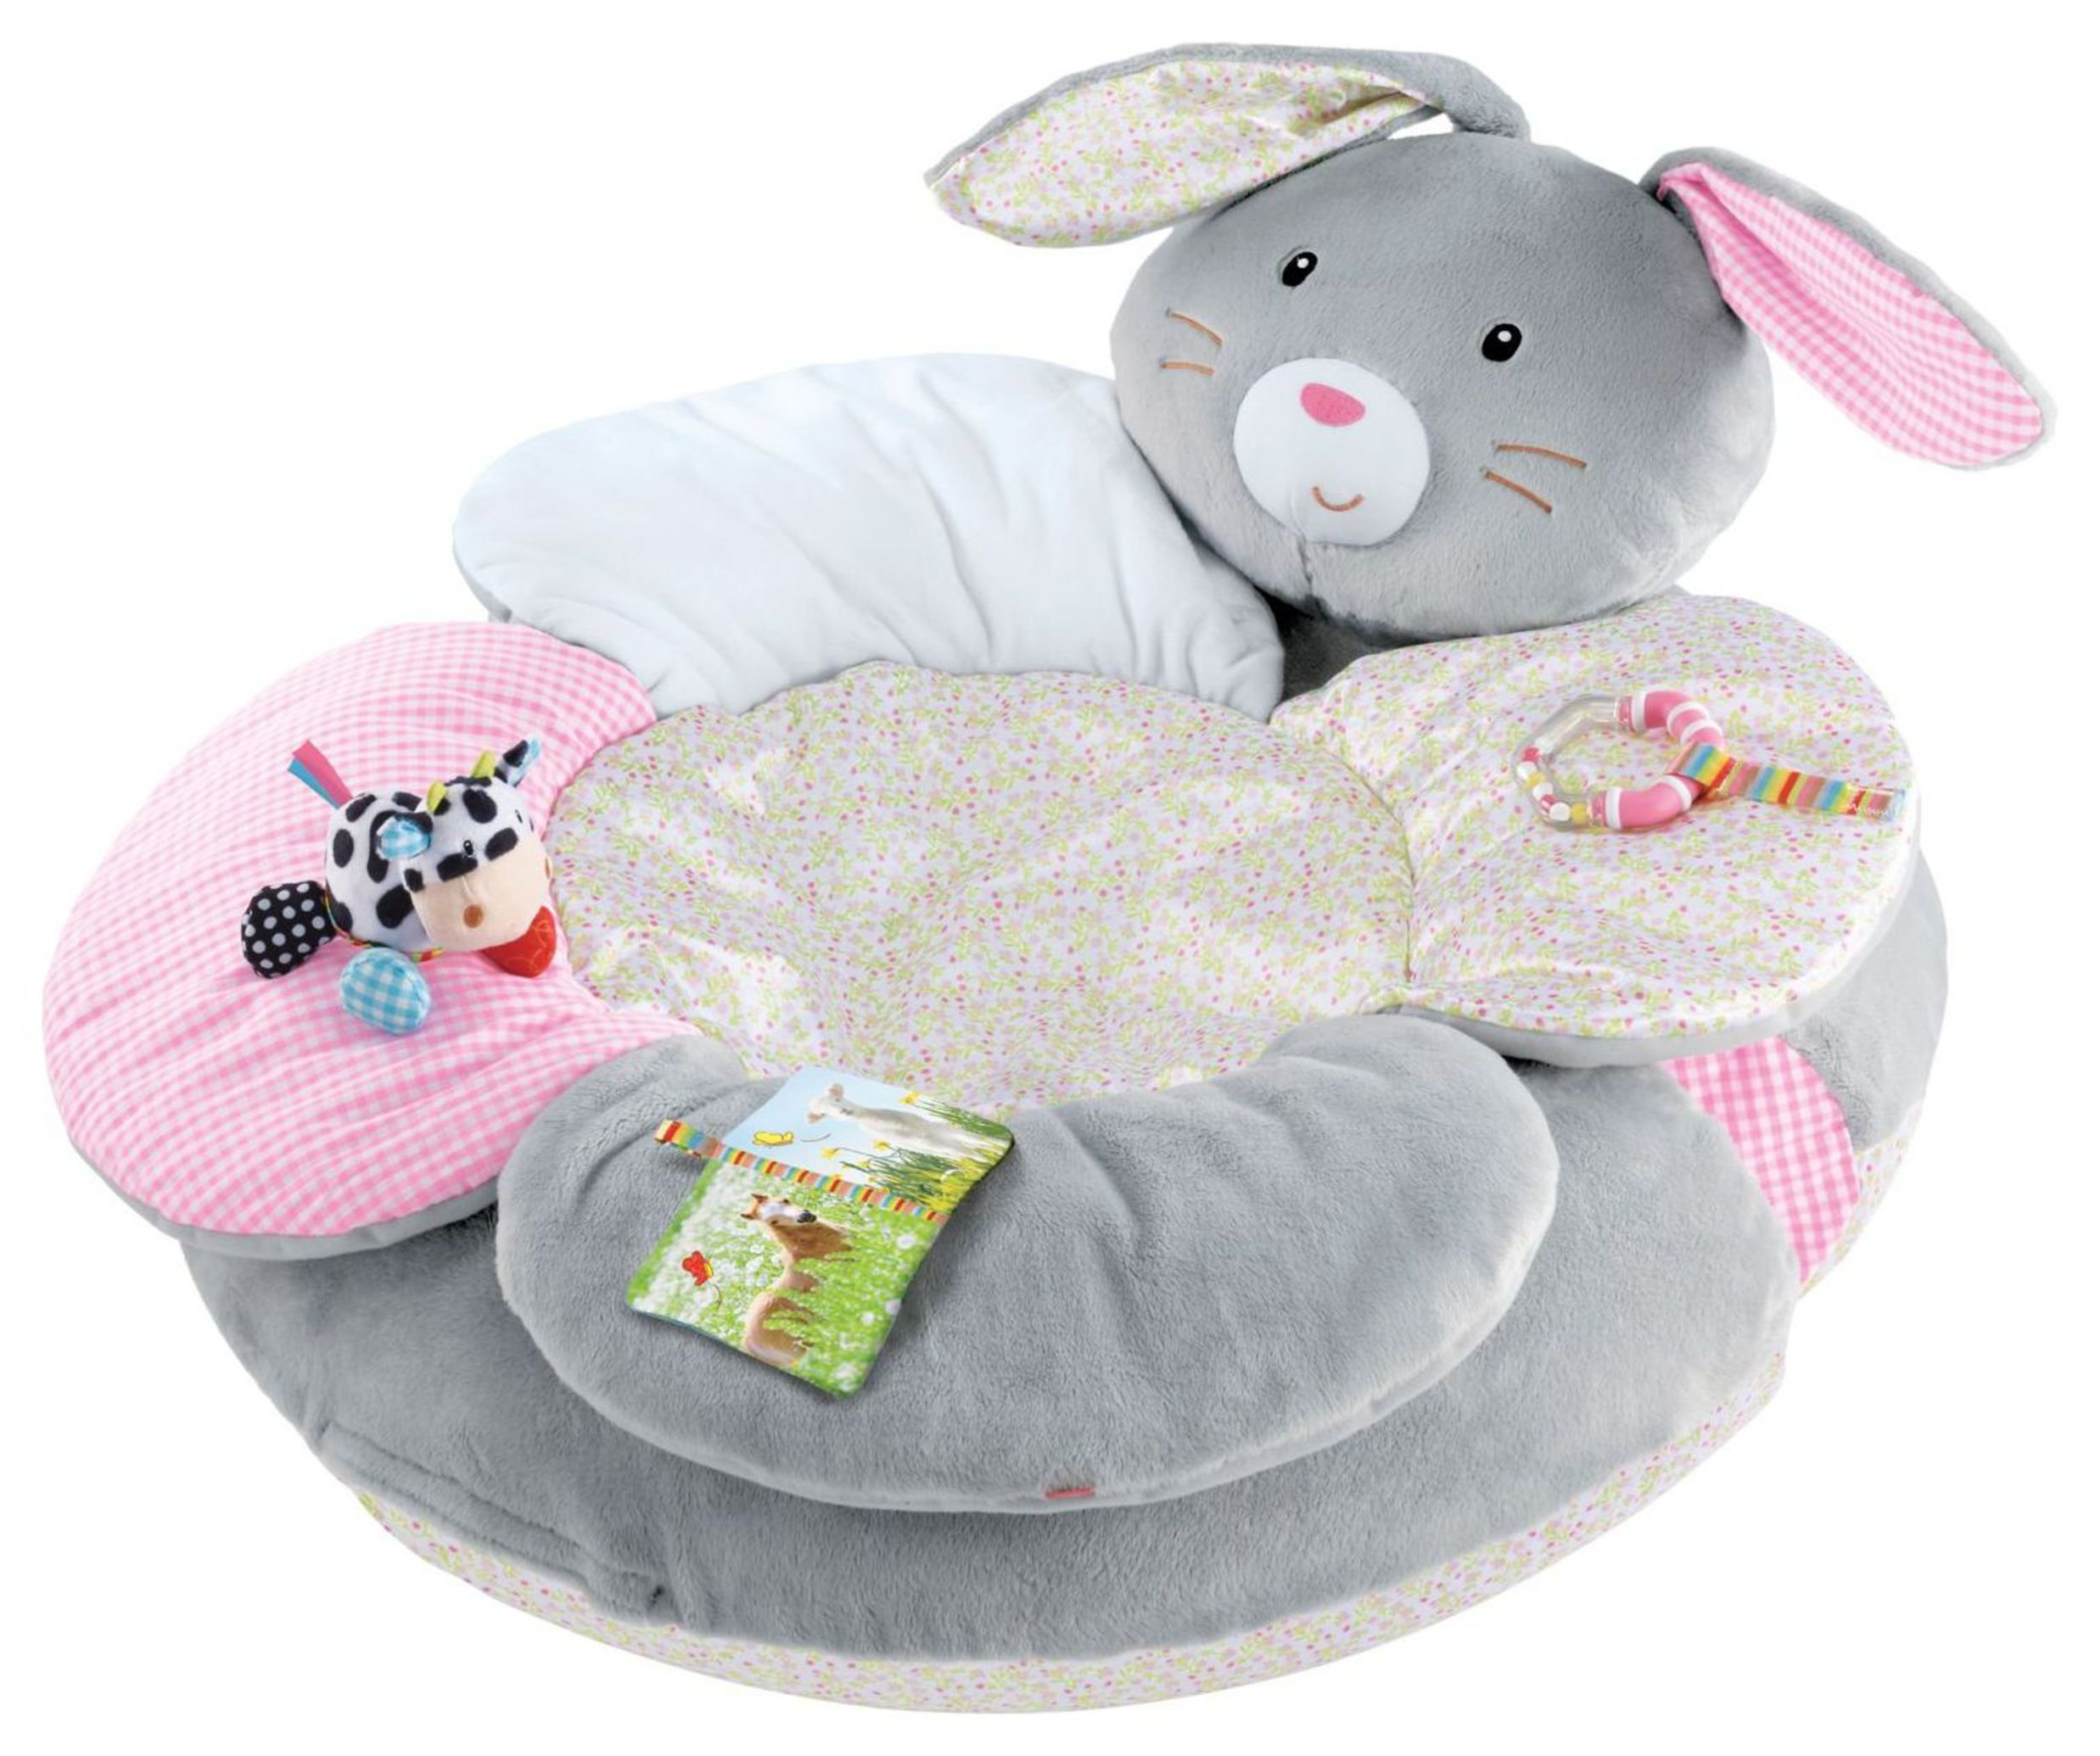 Image of Blossom Farm Bunny Sit Me Up Cosy.